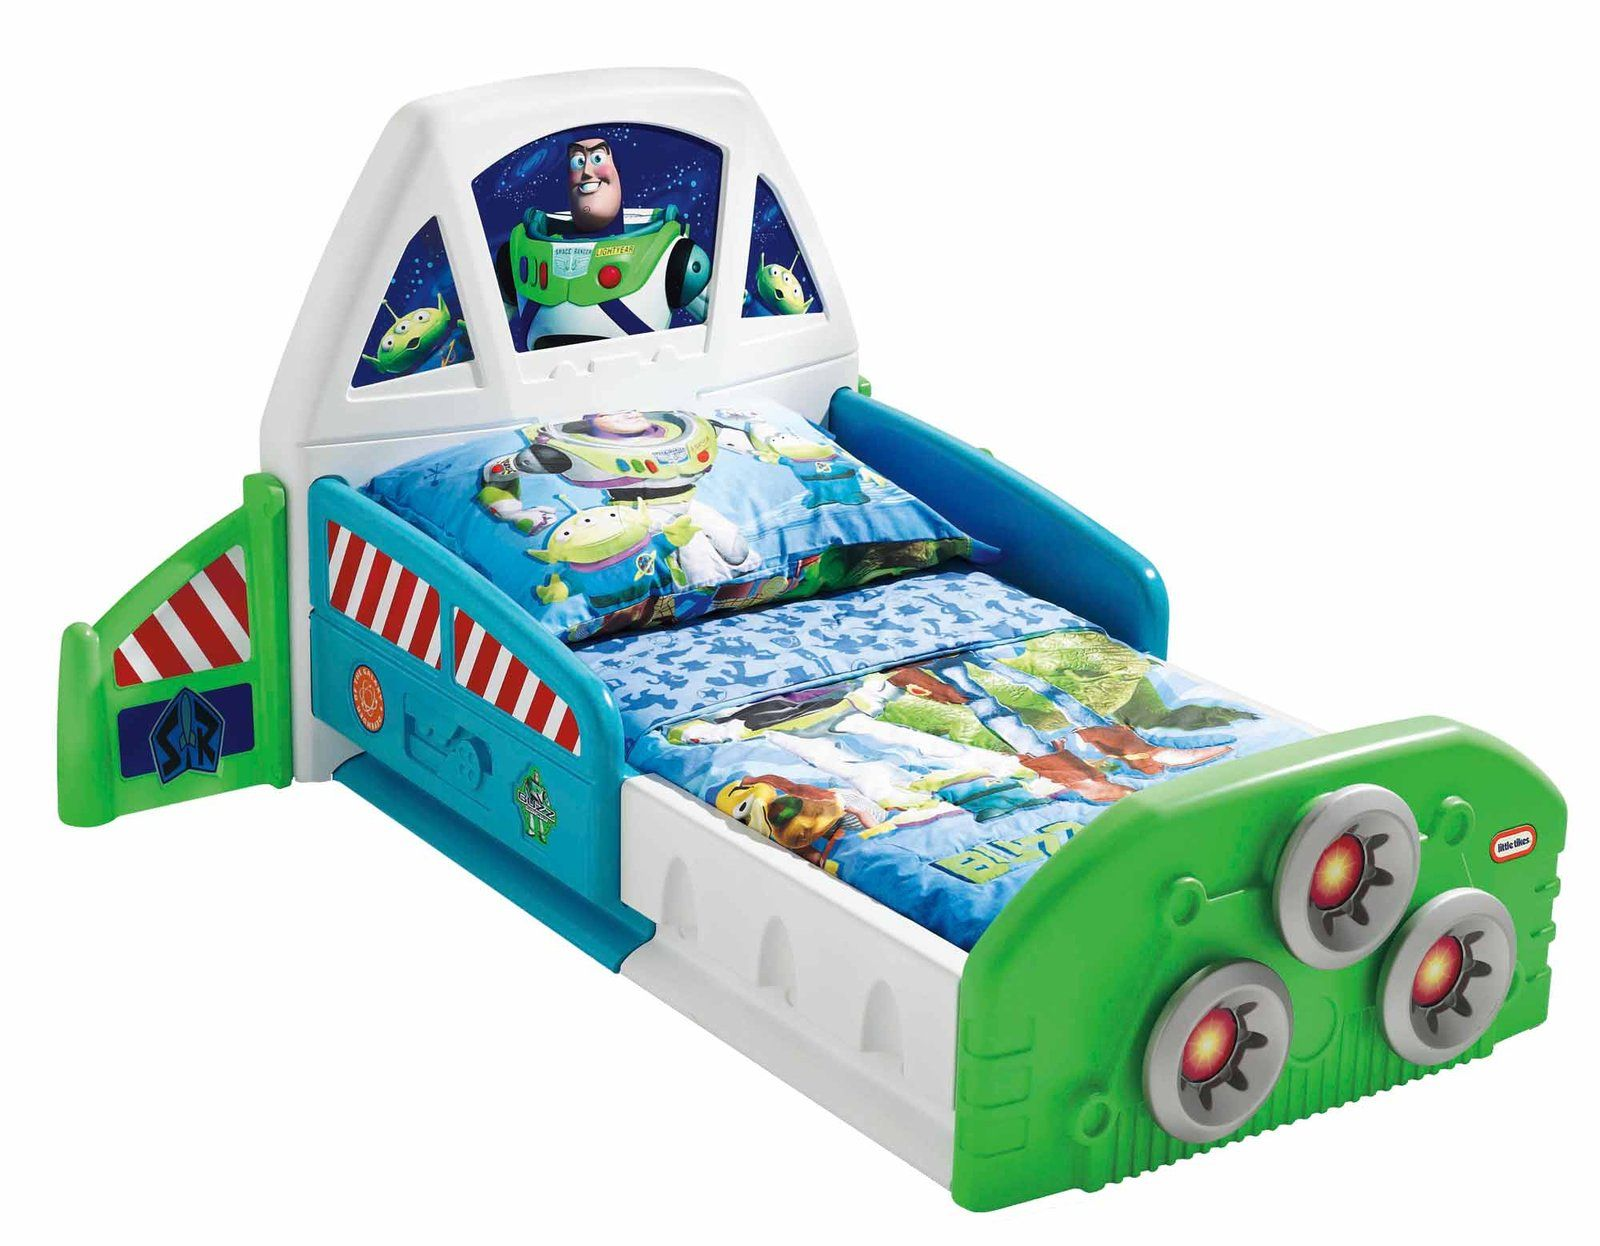 Little Tikes Buzz Lightyear Spaceship Toddler Bed